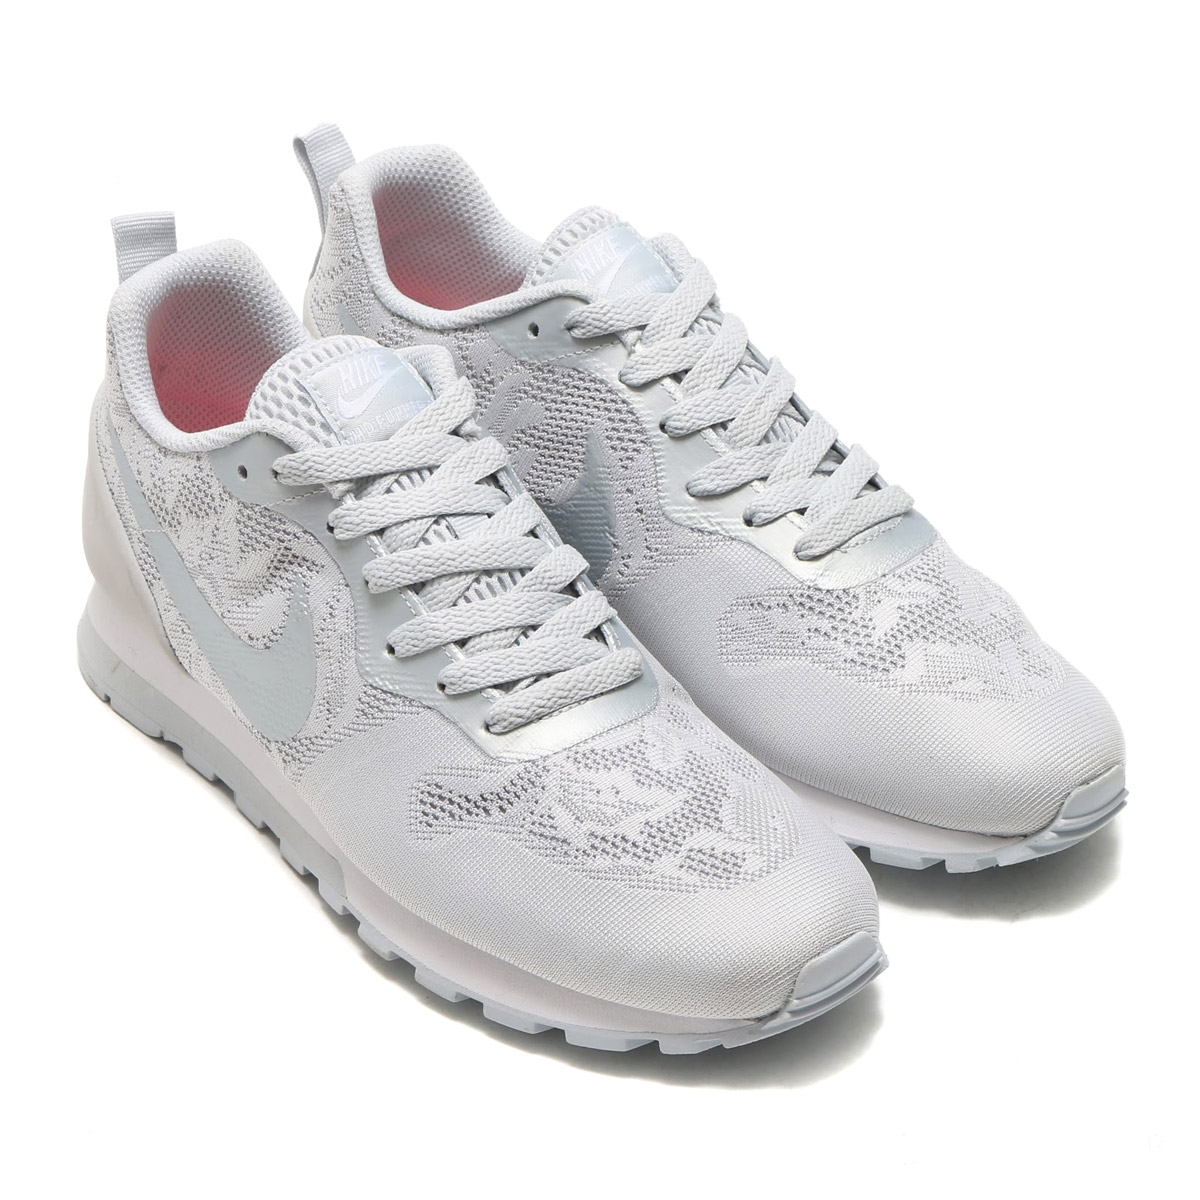 NIKE WMNS MD RUNNER 2 BR Nike women MD runner 2 BR WOLF GREY PURE  PLATINUMWHITE 17SUI